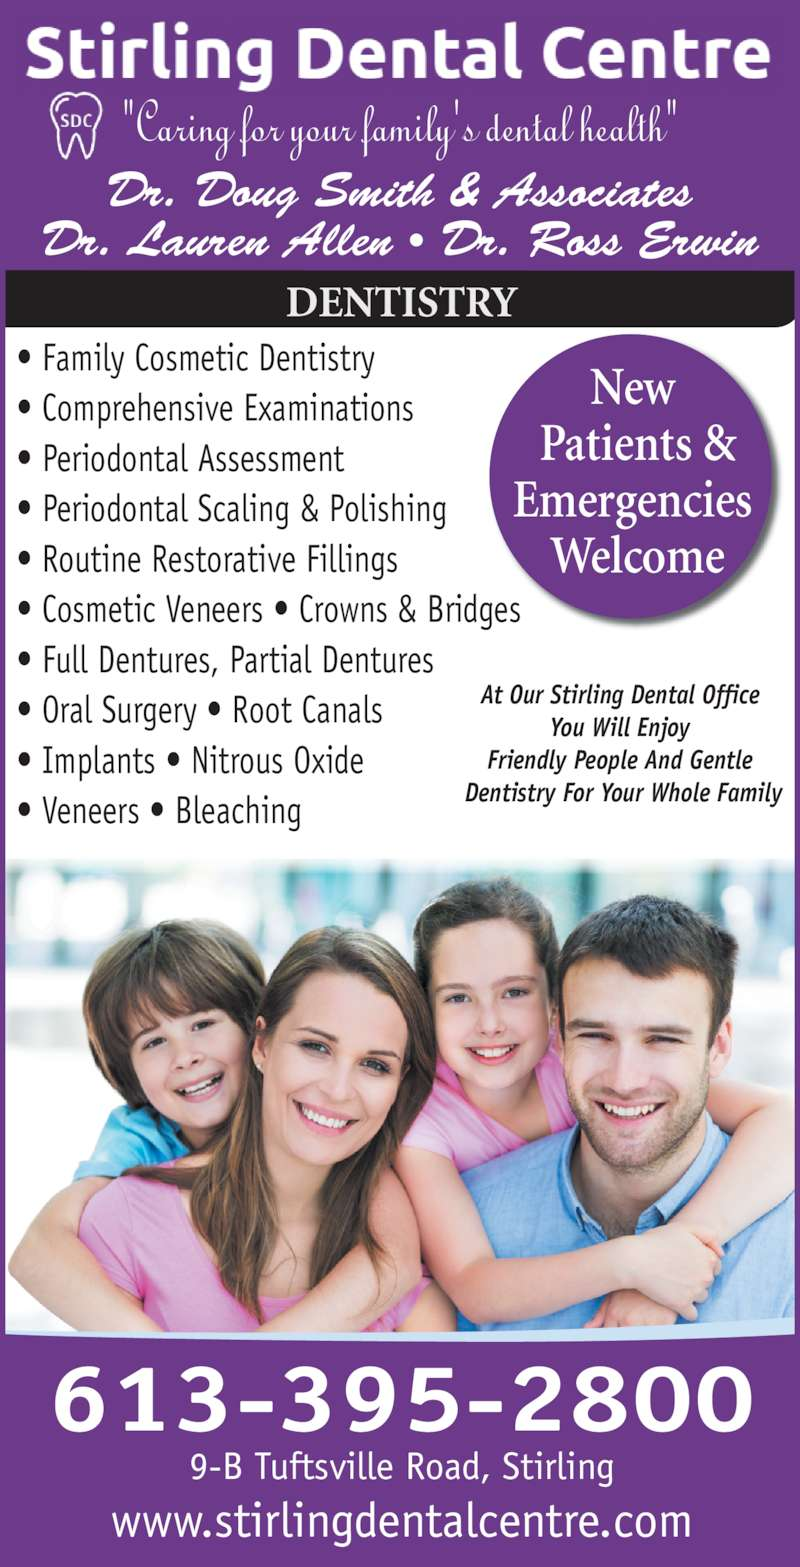 """Stirling Dental Centre (613-395-2800) - Display Ad - 613-395-2800 www.stirlingdentalcentre.com DENTISTRY 9-B Tuftsville Road, Stirling ? Family Cosmetic Dentistry ? Comprehensive Examinations ? Periodontal Assessment ? Periodontal Scaling & Polishing ? Routine Restorative Fillings ? Cosmetic Veneers ? Crowns & Bridges ? Full Dentures, Partial Dentures ? Oral Surgery ? Root Canals ? Implants ? Nitrous Oxide ? Veneers ? Bleaching New  Patients & Emergencies  Welcome At Our Stirling Dental Office  Friendly People And Gentle  Dentistry For Your Whole Family Dr. Doug Smith & Associates Dr. Lauren Allen ? Dr. Ross Erwin """"Caring for your family's dental health"""" You Will Enjoy"""